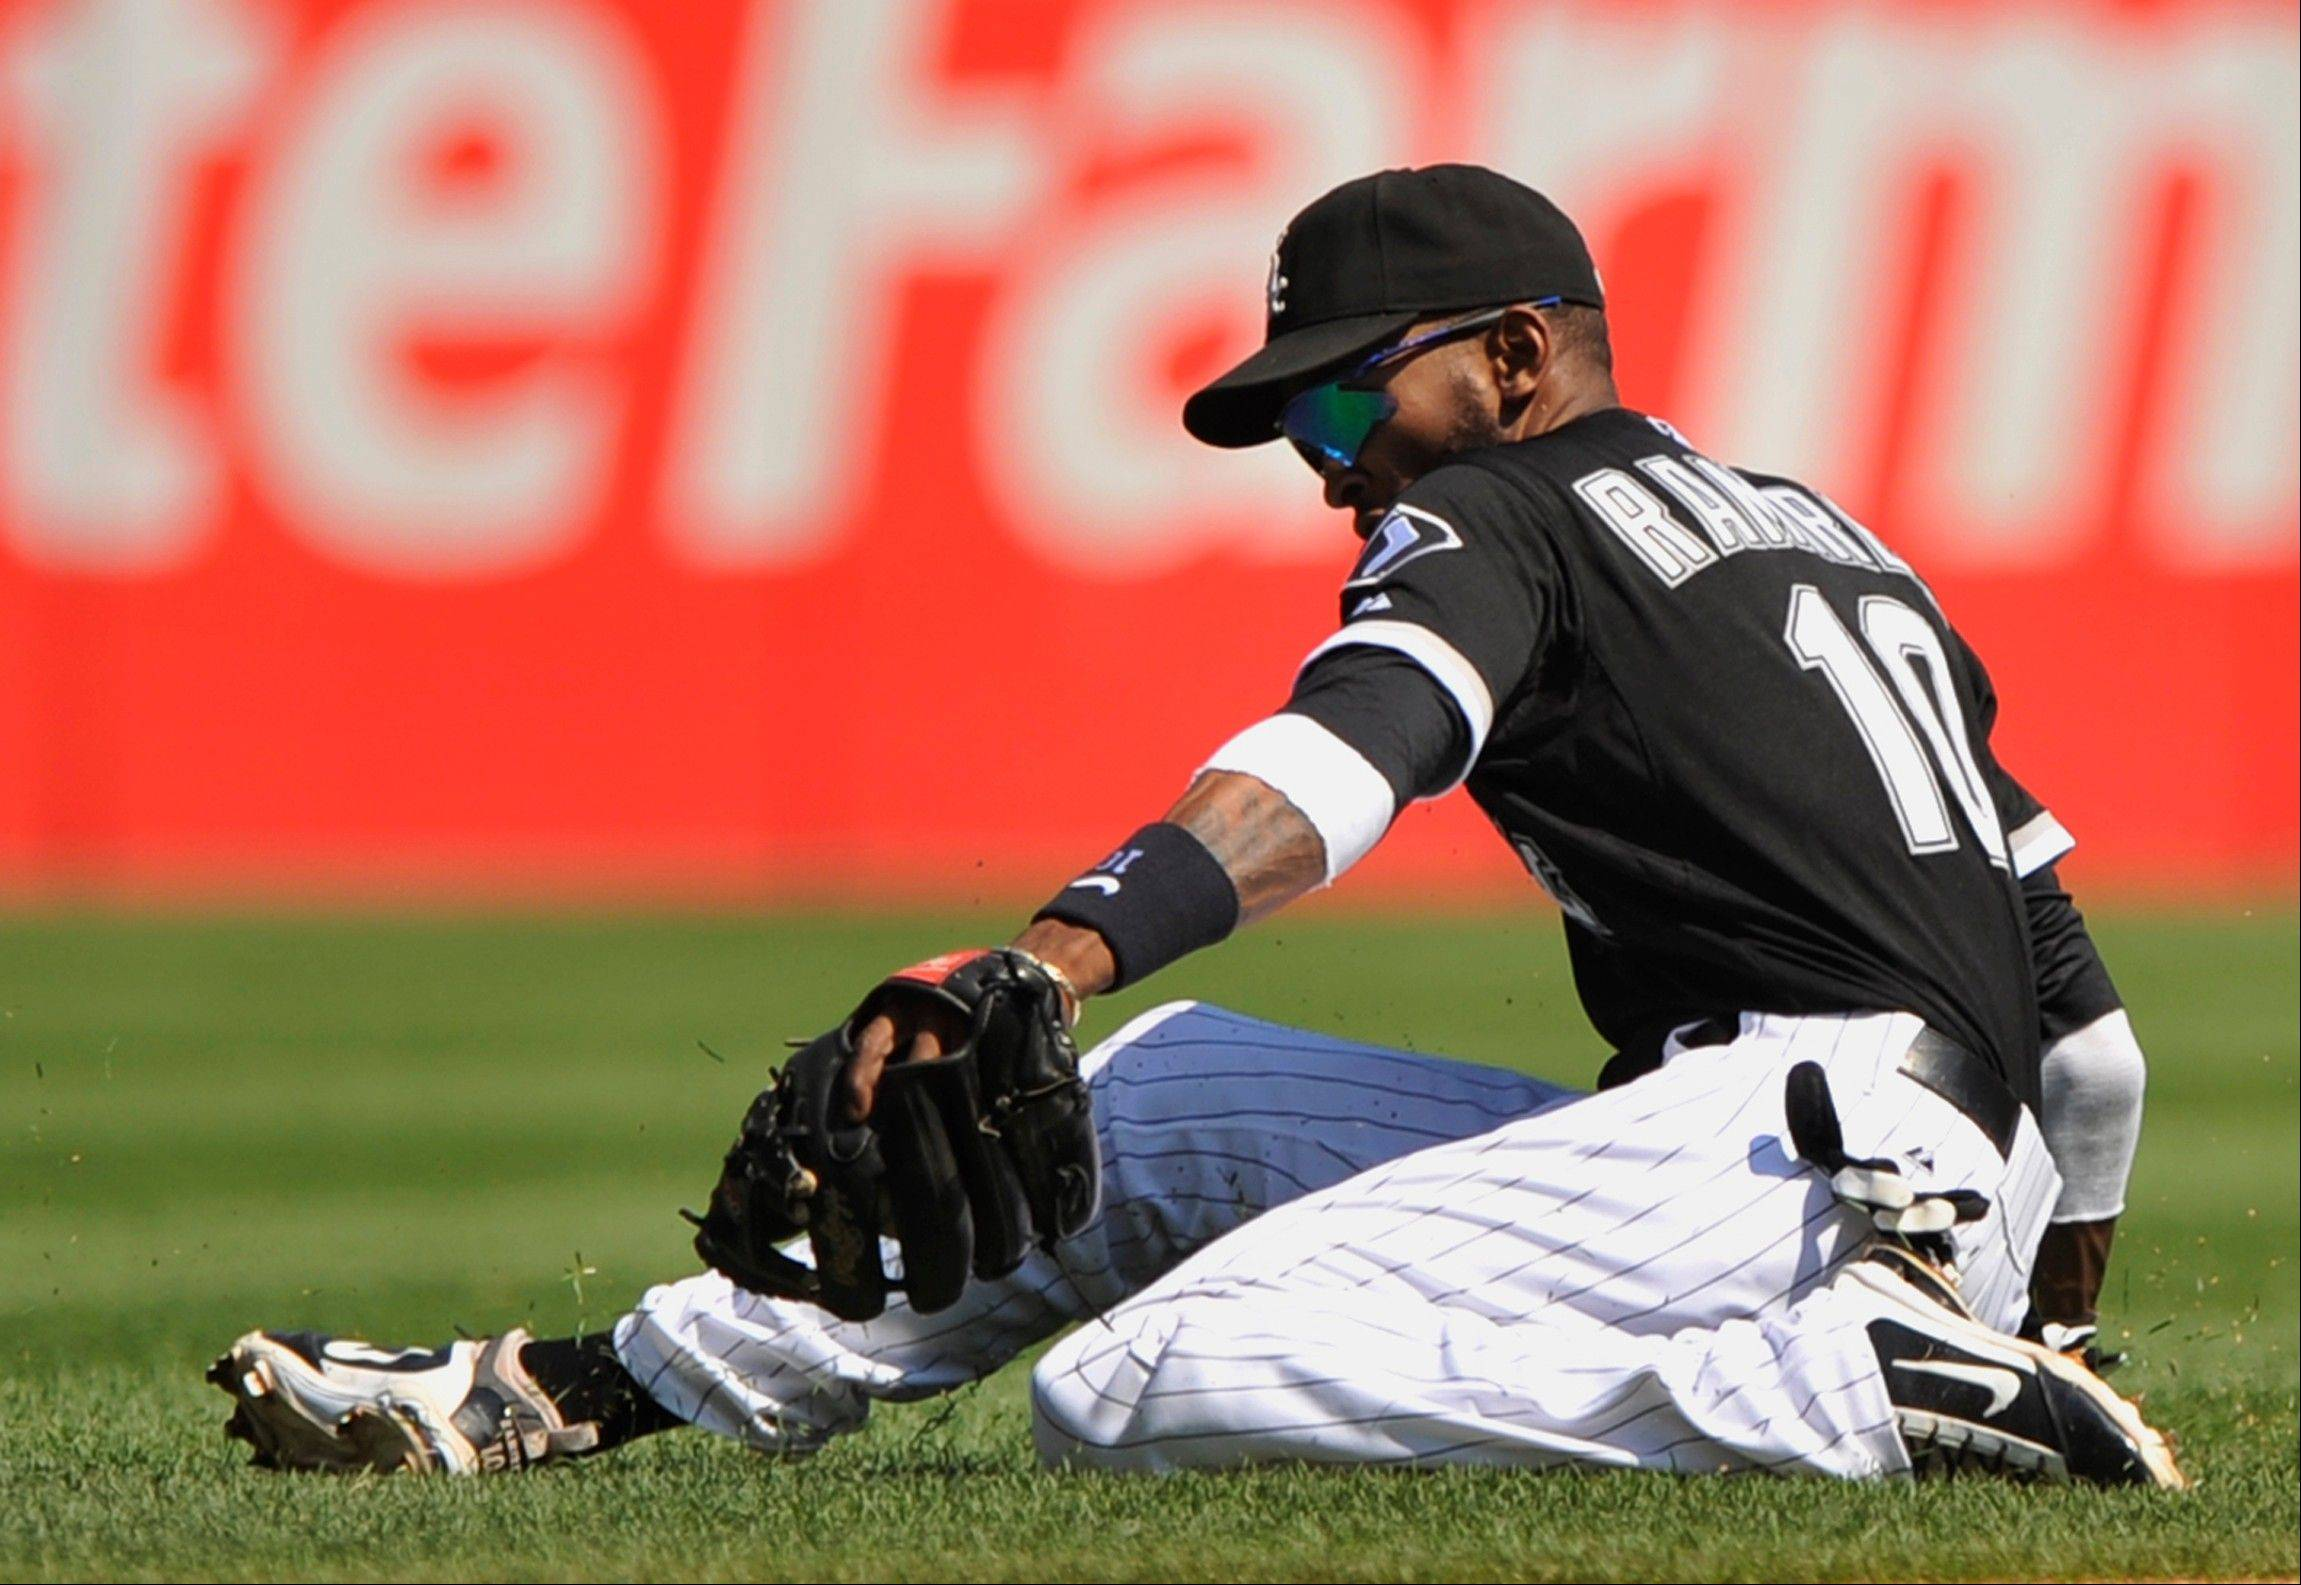 White Sox shortstop Alexei Ramirez could be one of any number of players who will not be on the roster heading into August.